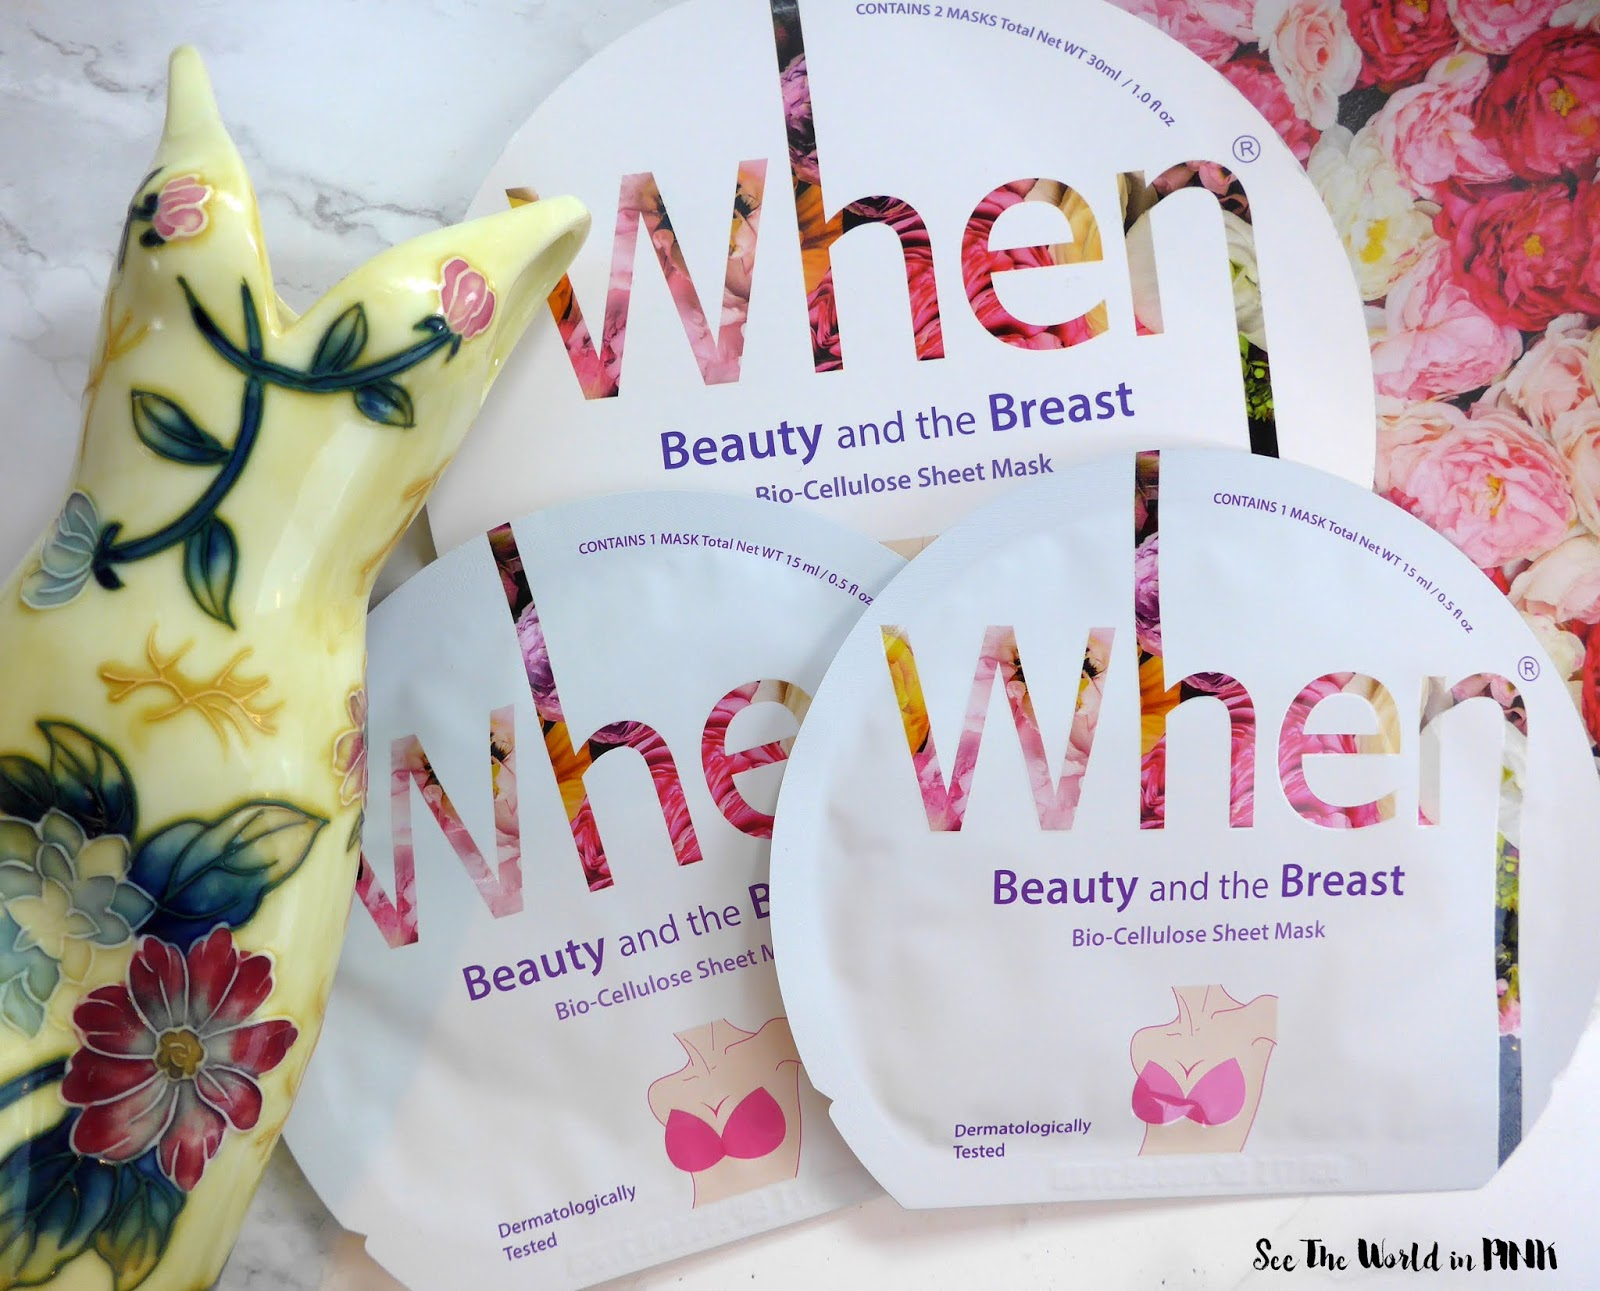 Skincare Sunday - When Beauty and the Breast Bio-Cellulose Body Sheet Mask